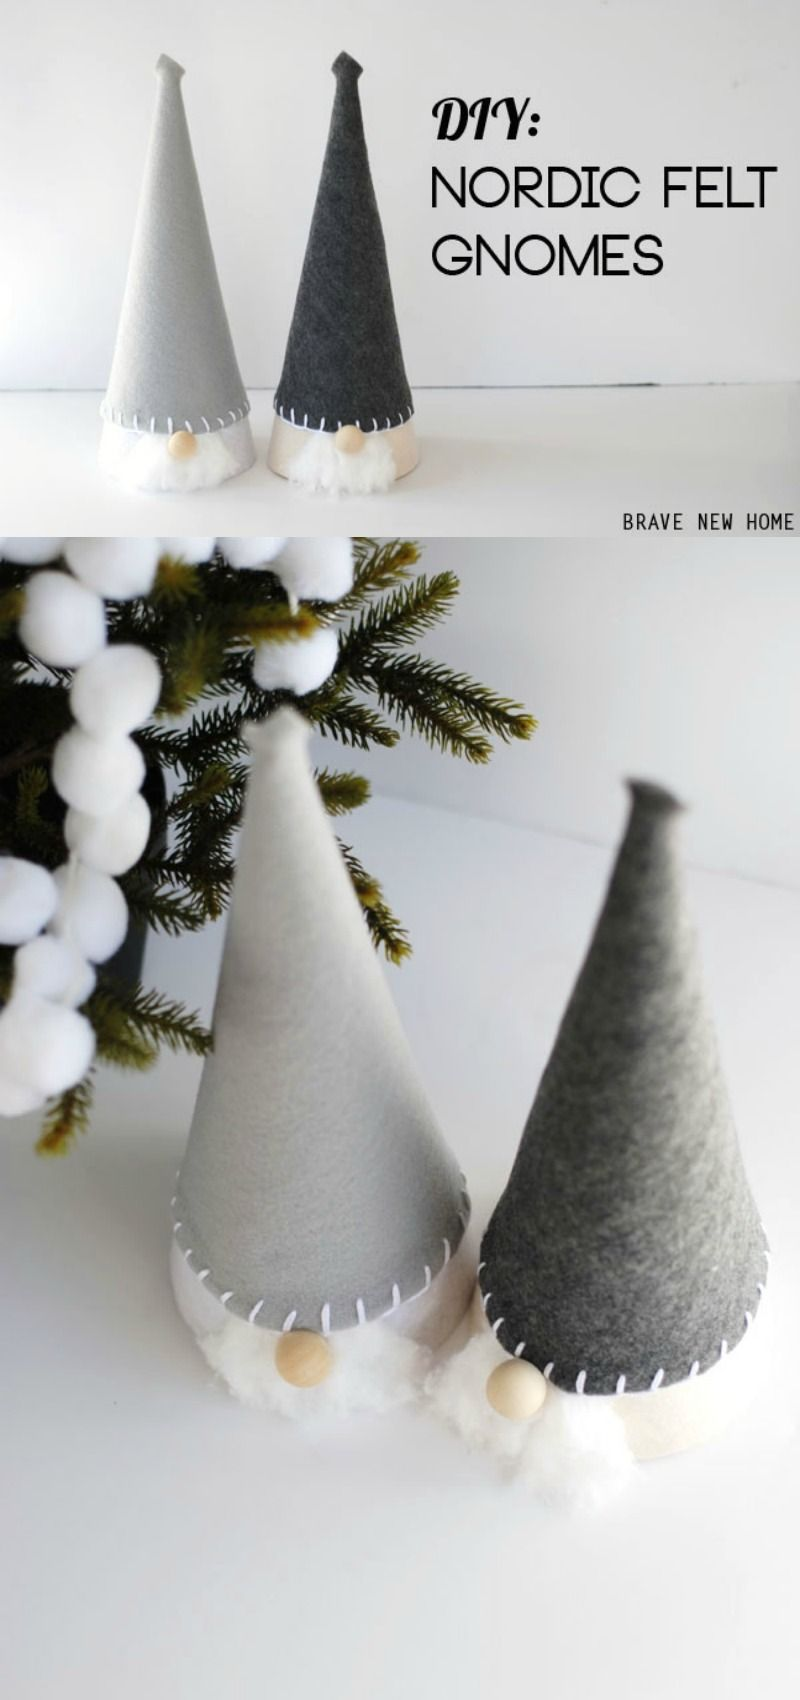 DIY Nordic Felted Christmas Gnomes The secret